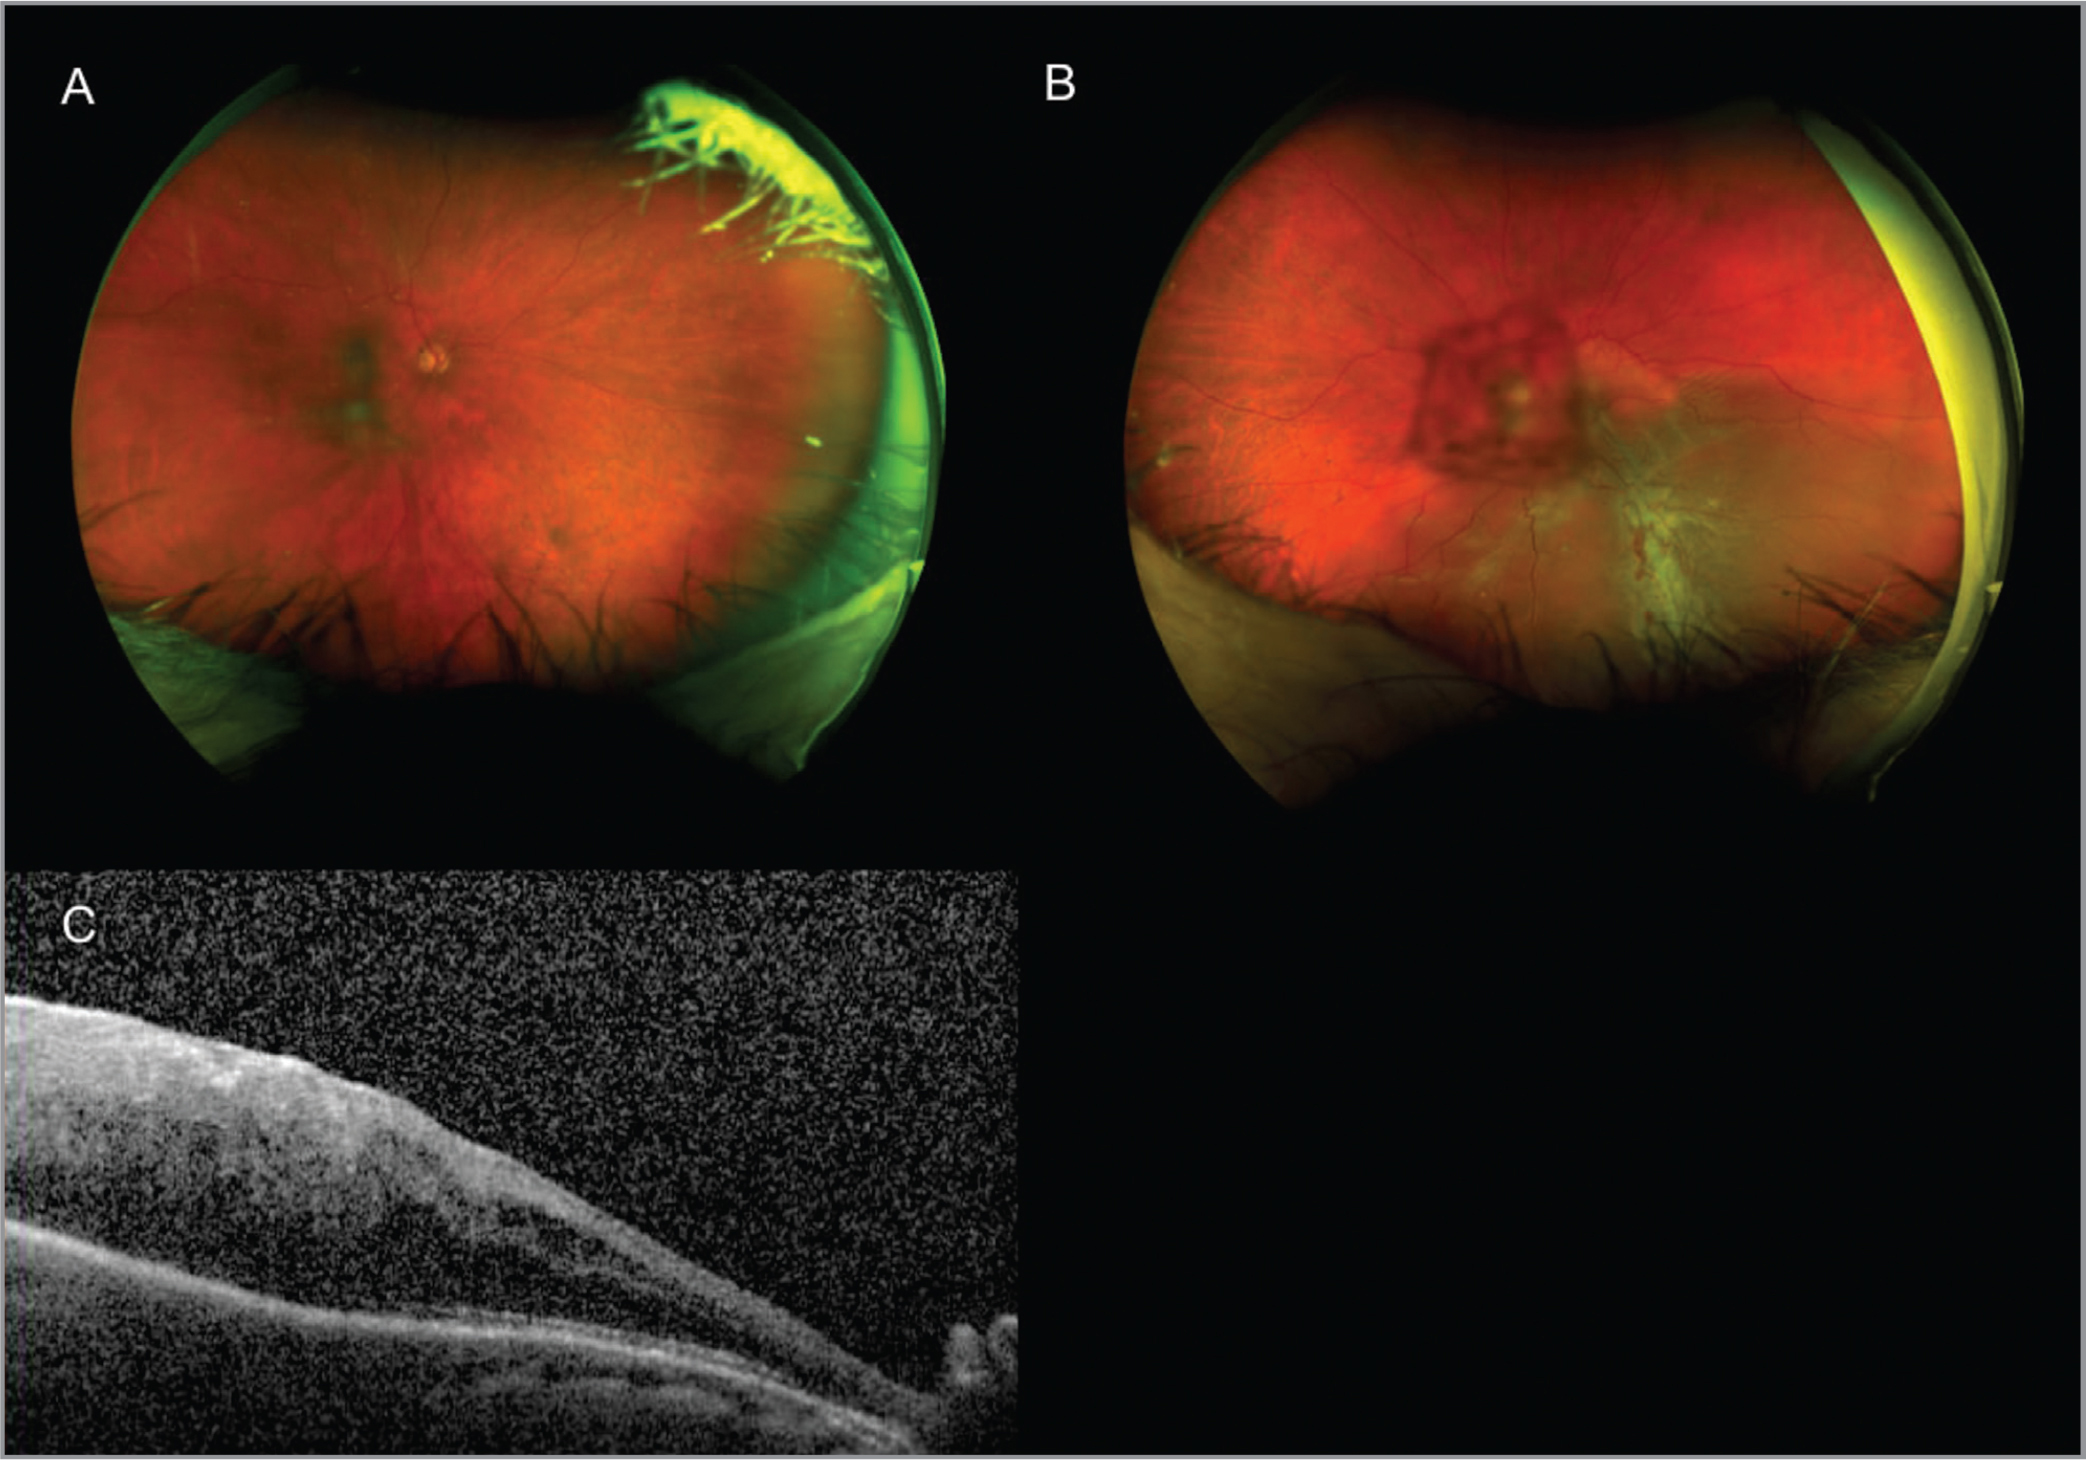 "Eleven months after autologous ""stem cell"" injections (ASCIs), the widefield fundus photo of the right eye (A) shows persistence of the epiretinal membrane (ERM), but no retinal detachment (RD). Widefield fundus photo of the left eye (B) shows an inferior macula-involving RD with proliferative vitreoretinopathy. Optical coherence tomography (OCT) of the right eye (C) shows worsening of the ERM. An OCT of the left eye was attempted but a satisfactory image could not be captured due to the bullous nature of the RD."